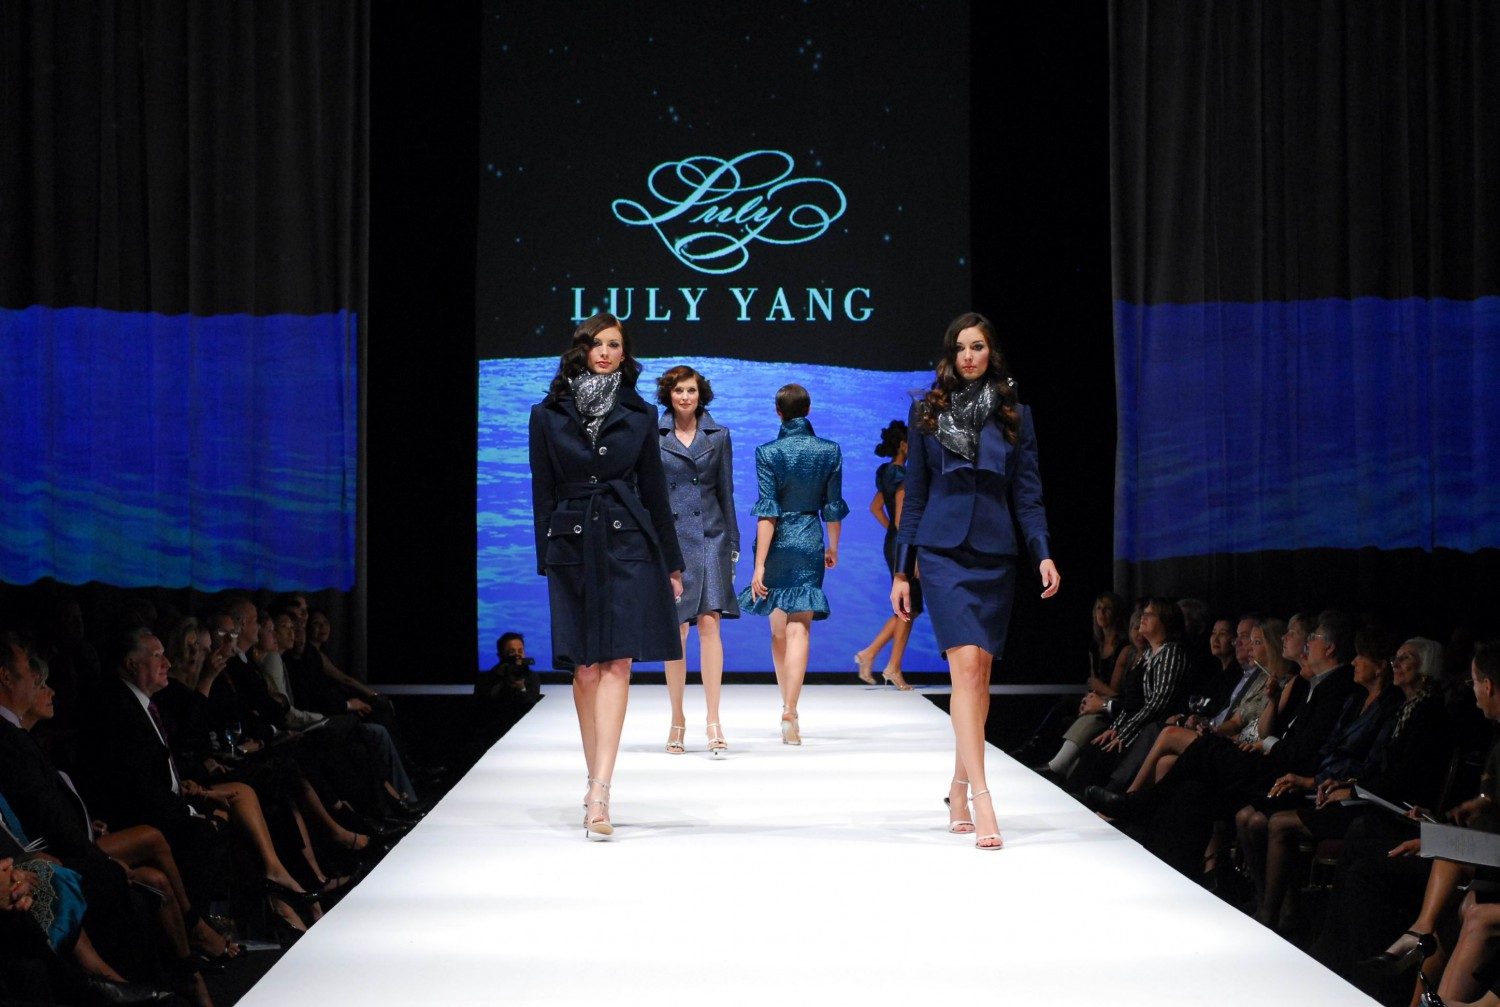 Seattle Fashion Designer Luly Yang Will Design New Uniforms For 12 000 Alaska Employees Alaska Airlines Blog